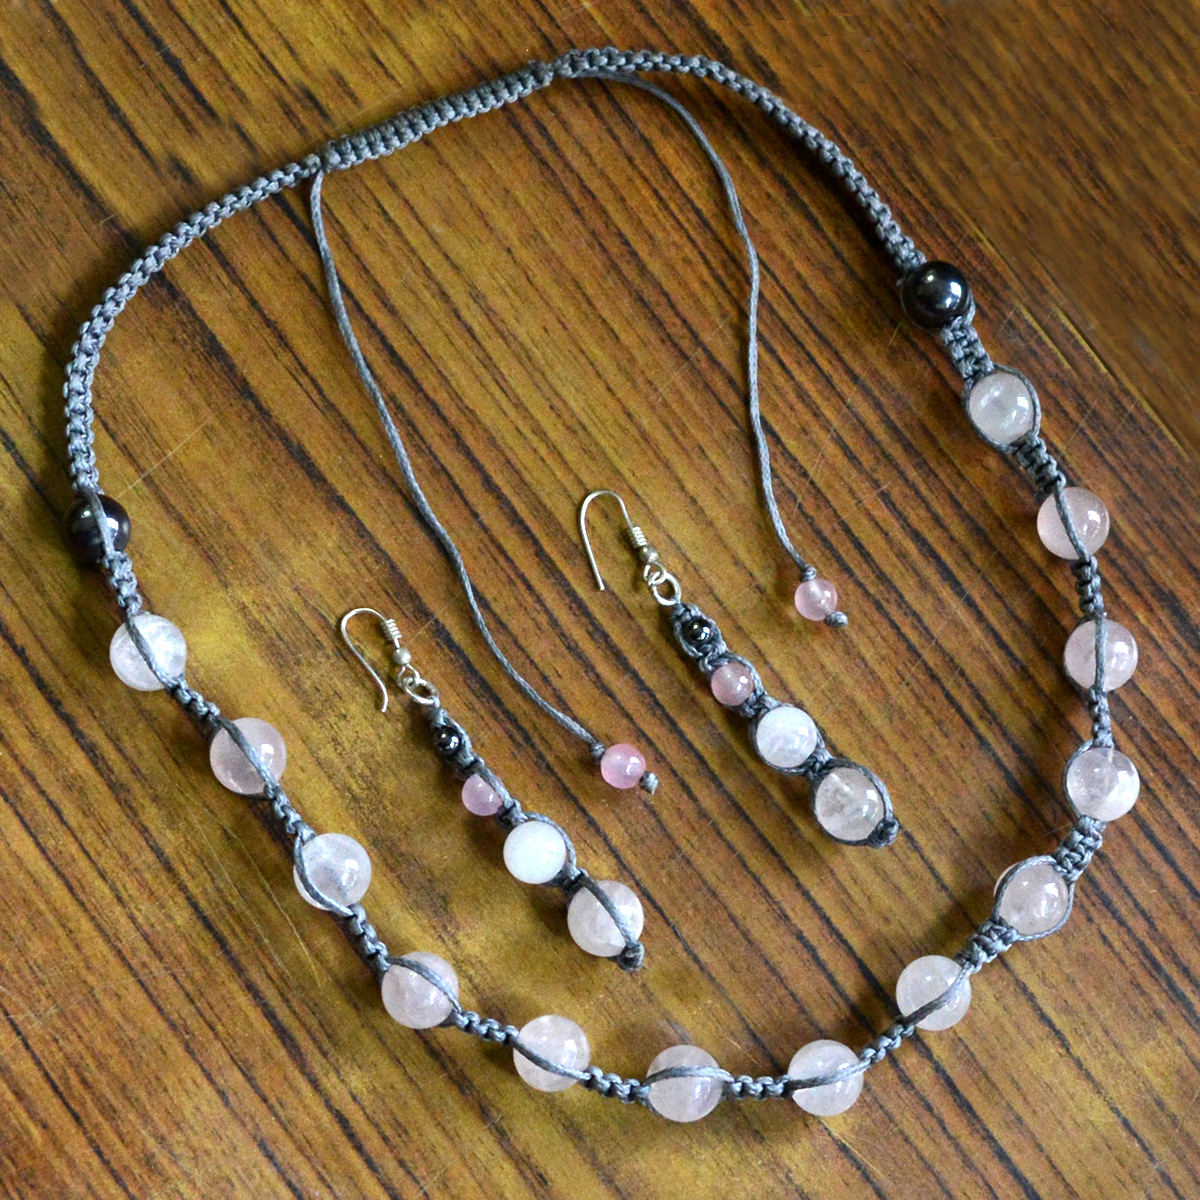 Jaipur Rajasthan India 925 Sterling Silver Rose Quartz & Hematite Gemstone Necklace & Dangle Earring Jewelry Set Handmade Jewelry Manufacturer